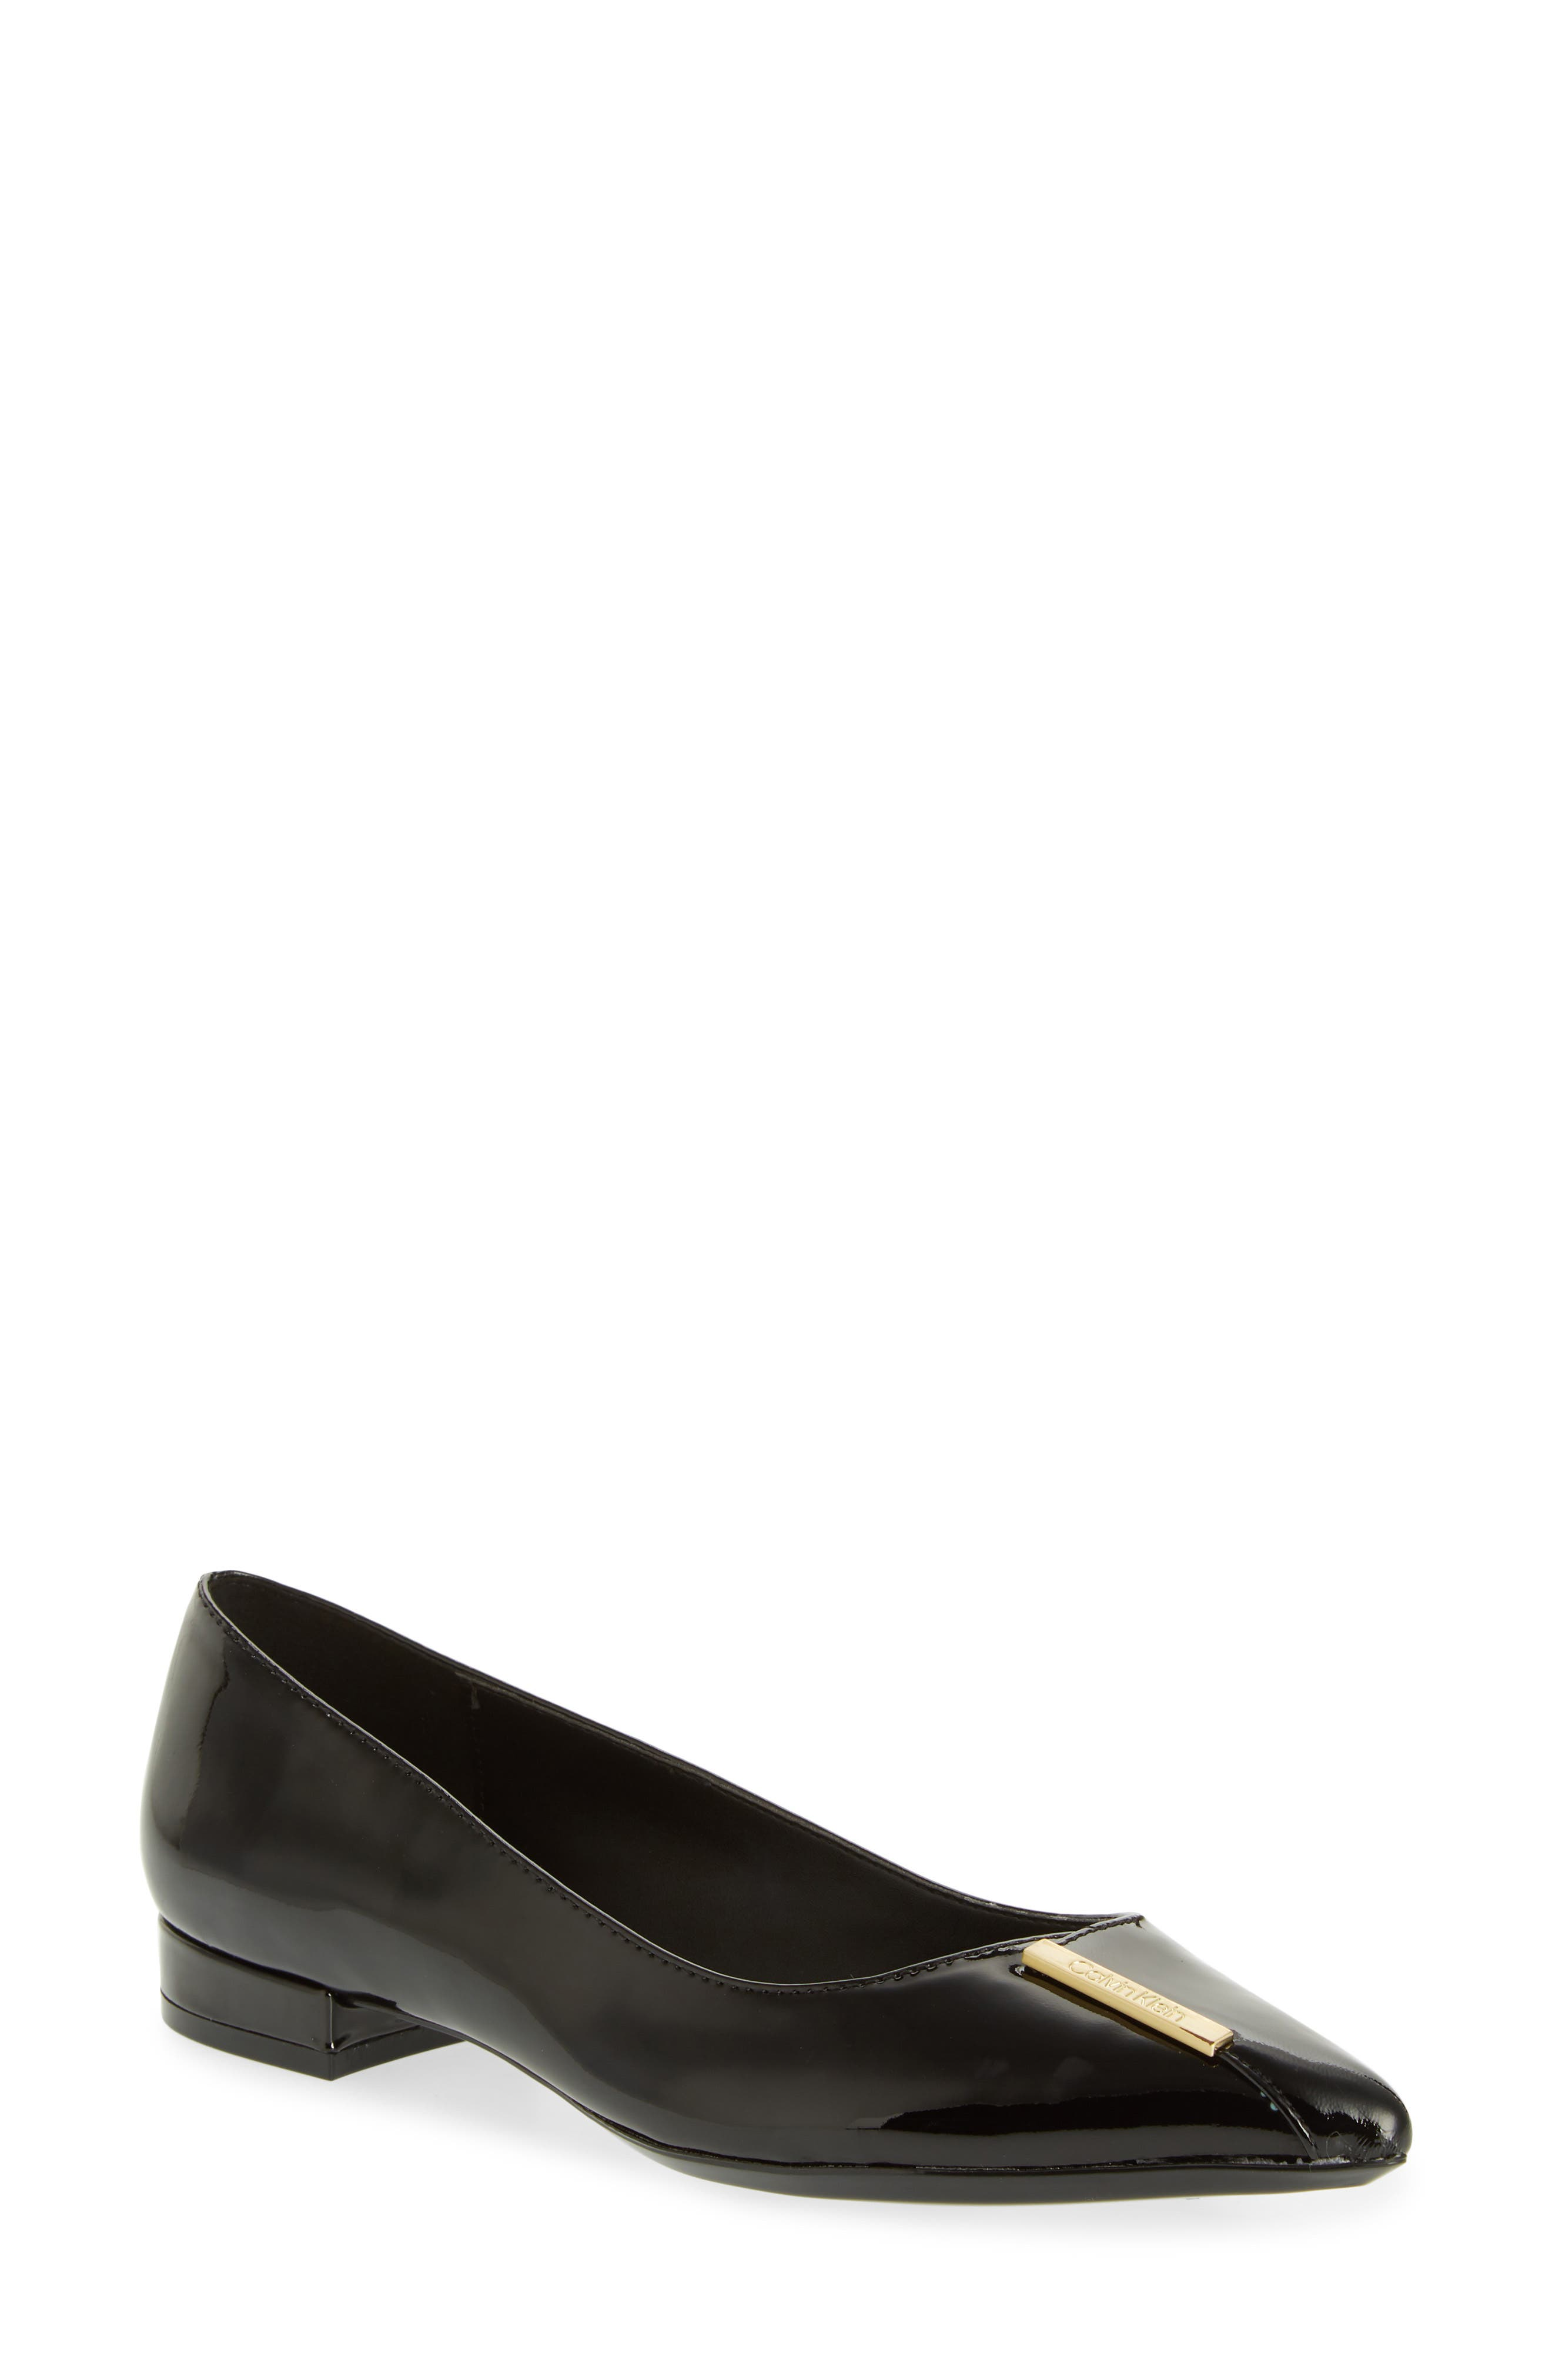 Arline Pointy Toe Flat,                             Main thumbnail 1, color,                             BLACK PATENT LEATHER